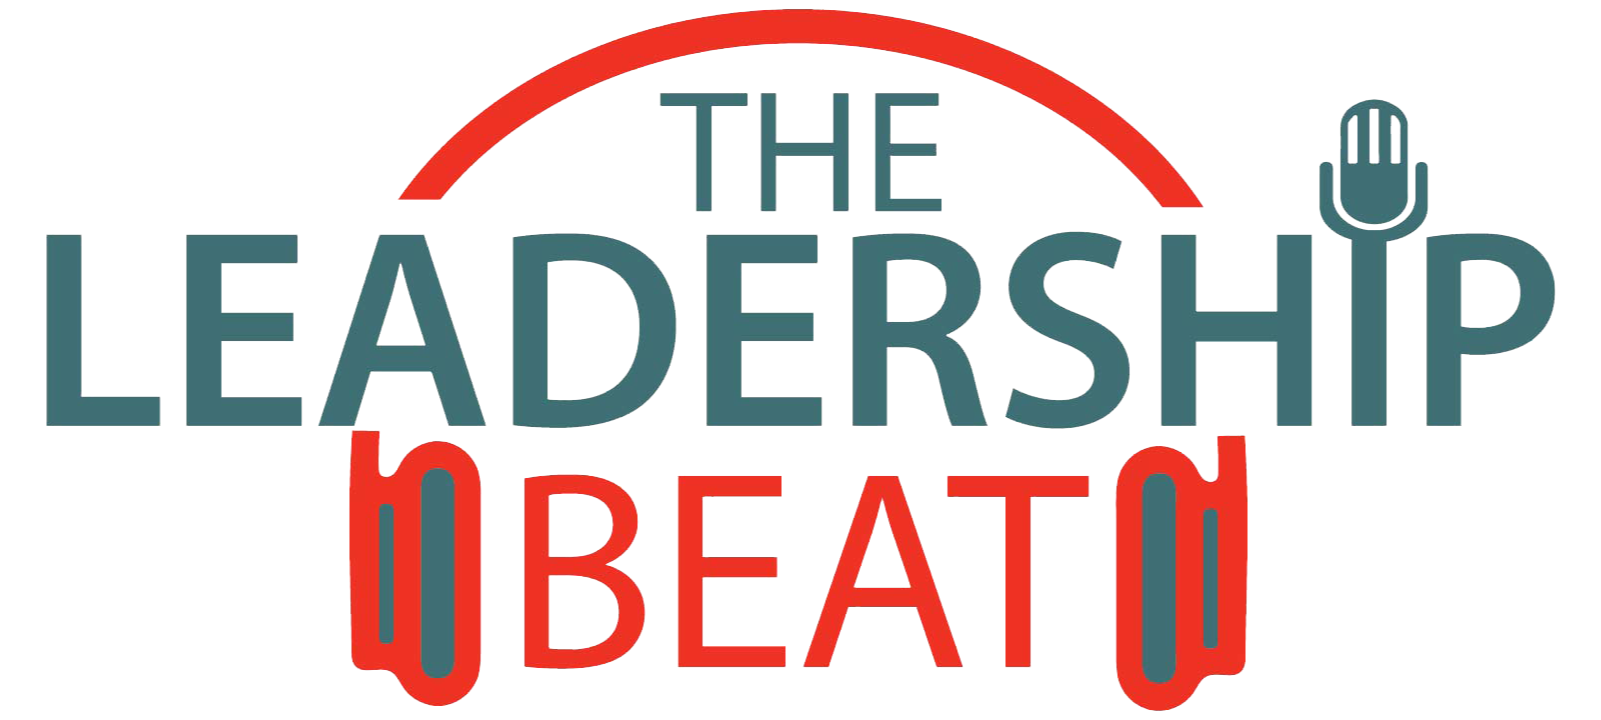 Leadership-Beat-logo-transparent-cropped